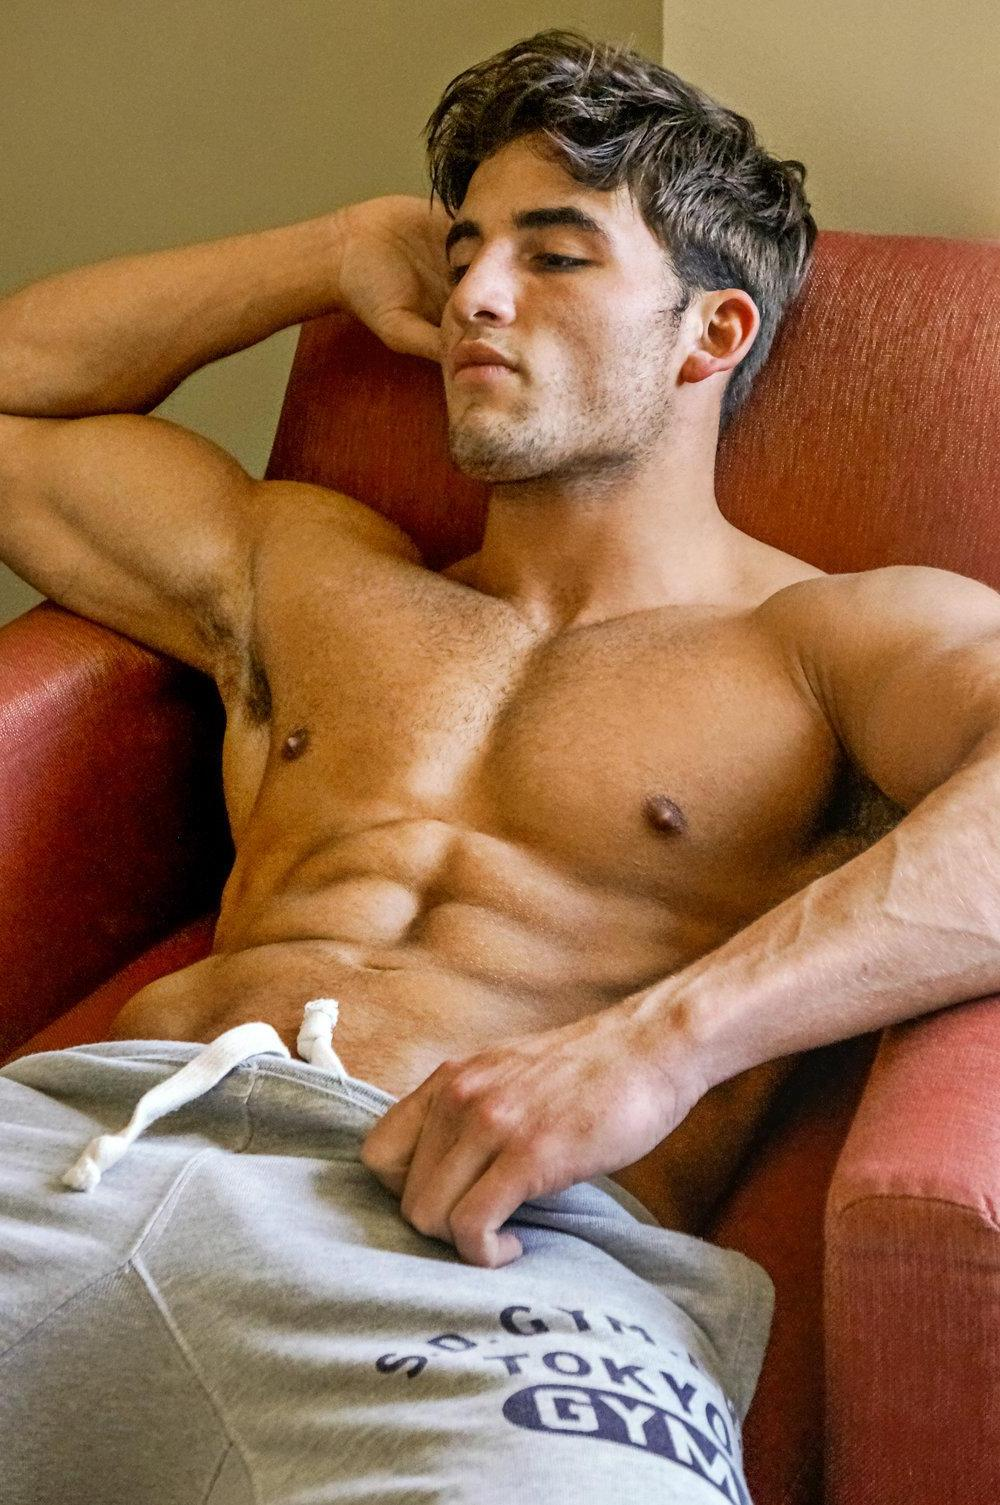 cocky-sexy-seductive-shirtless-fit-hunk-straight-dark-haired-muscular-attractive-dude